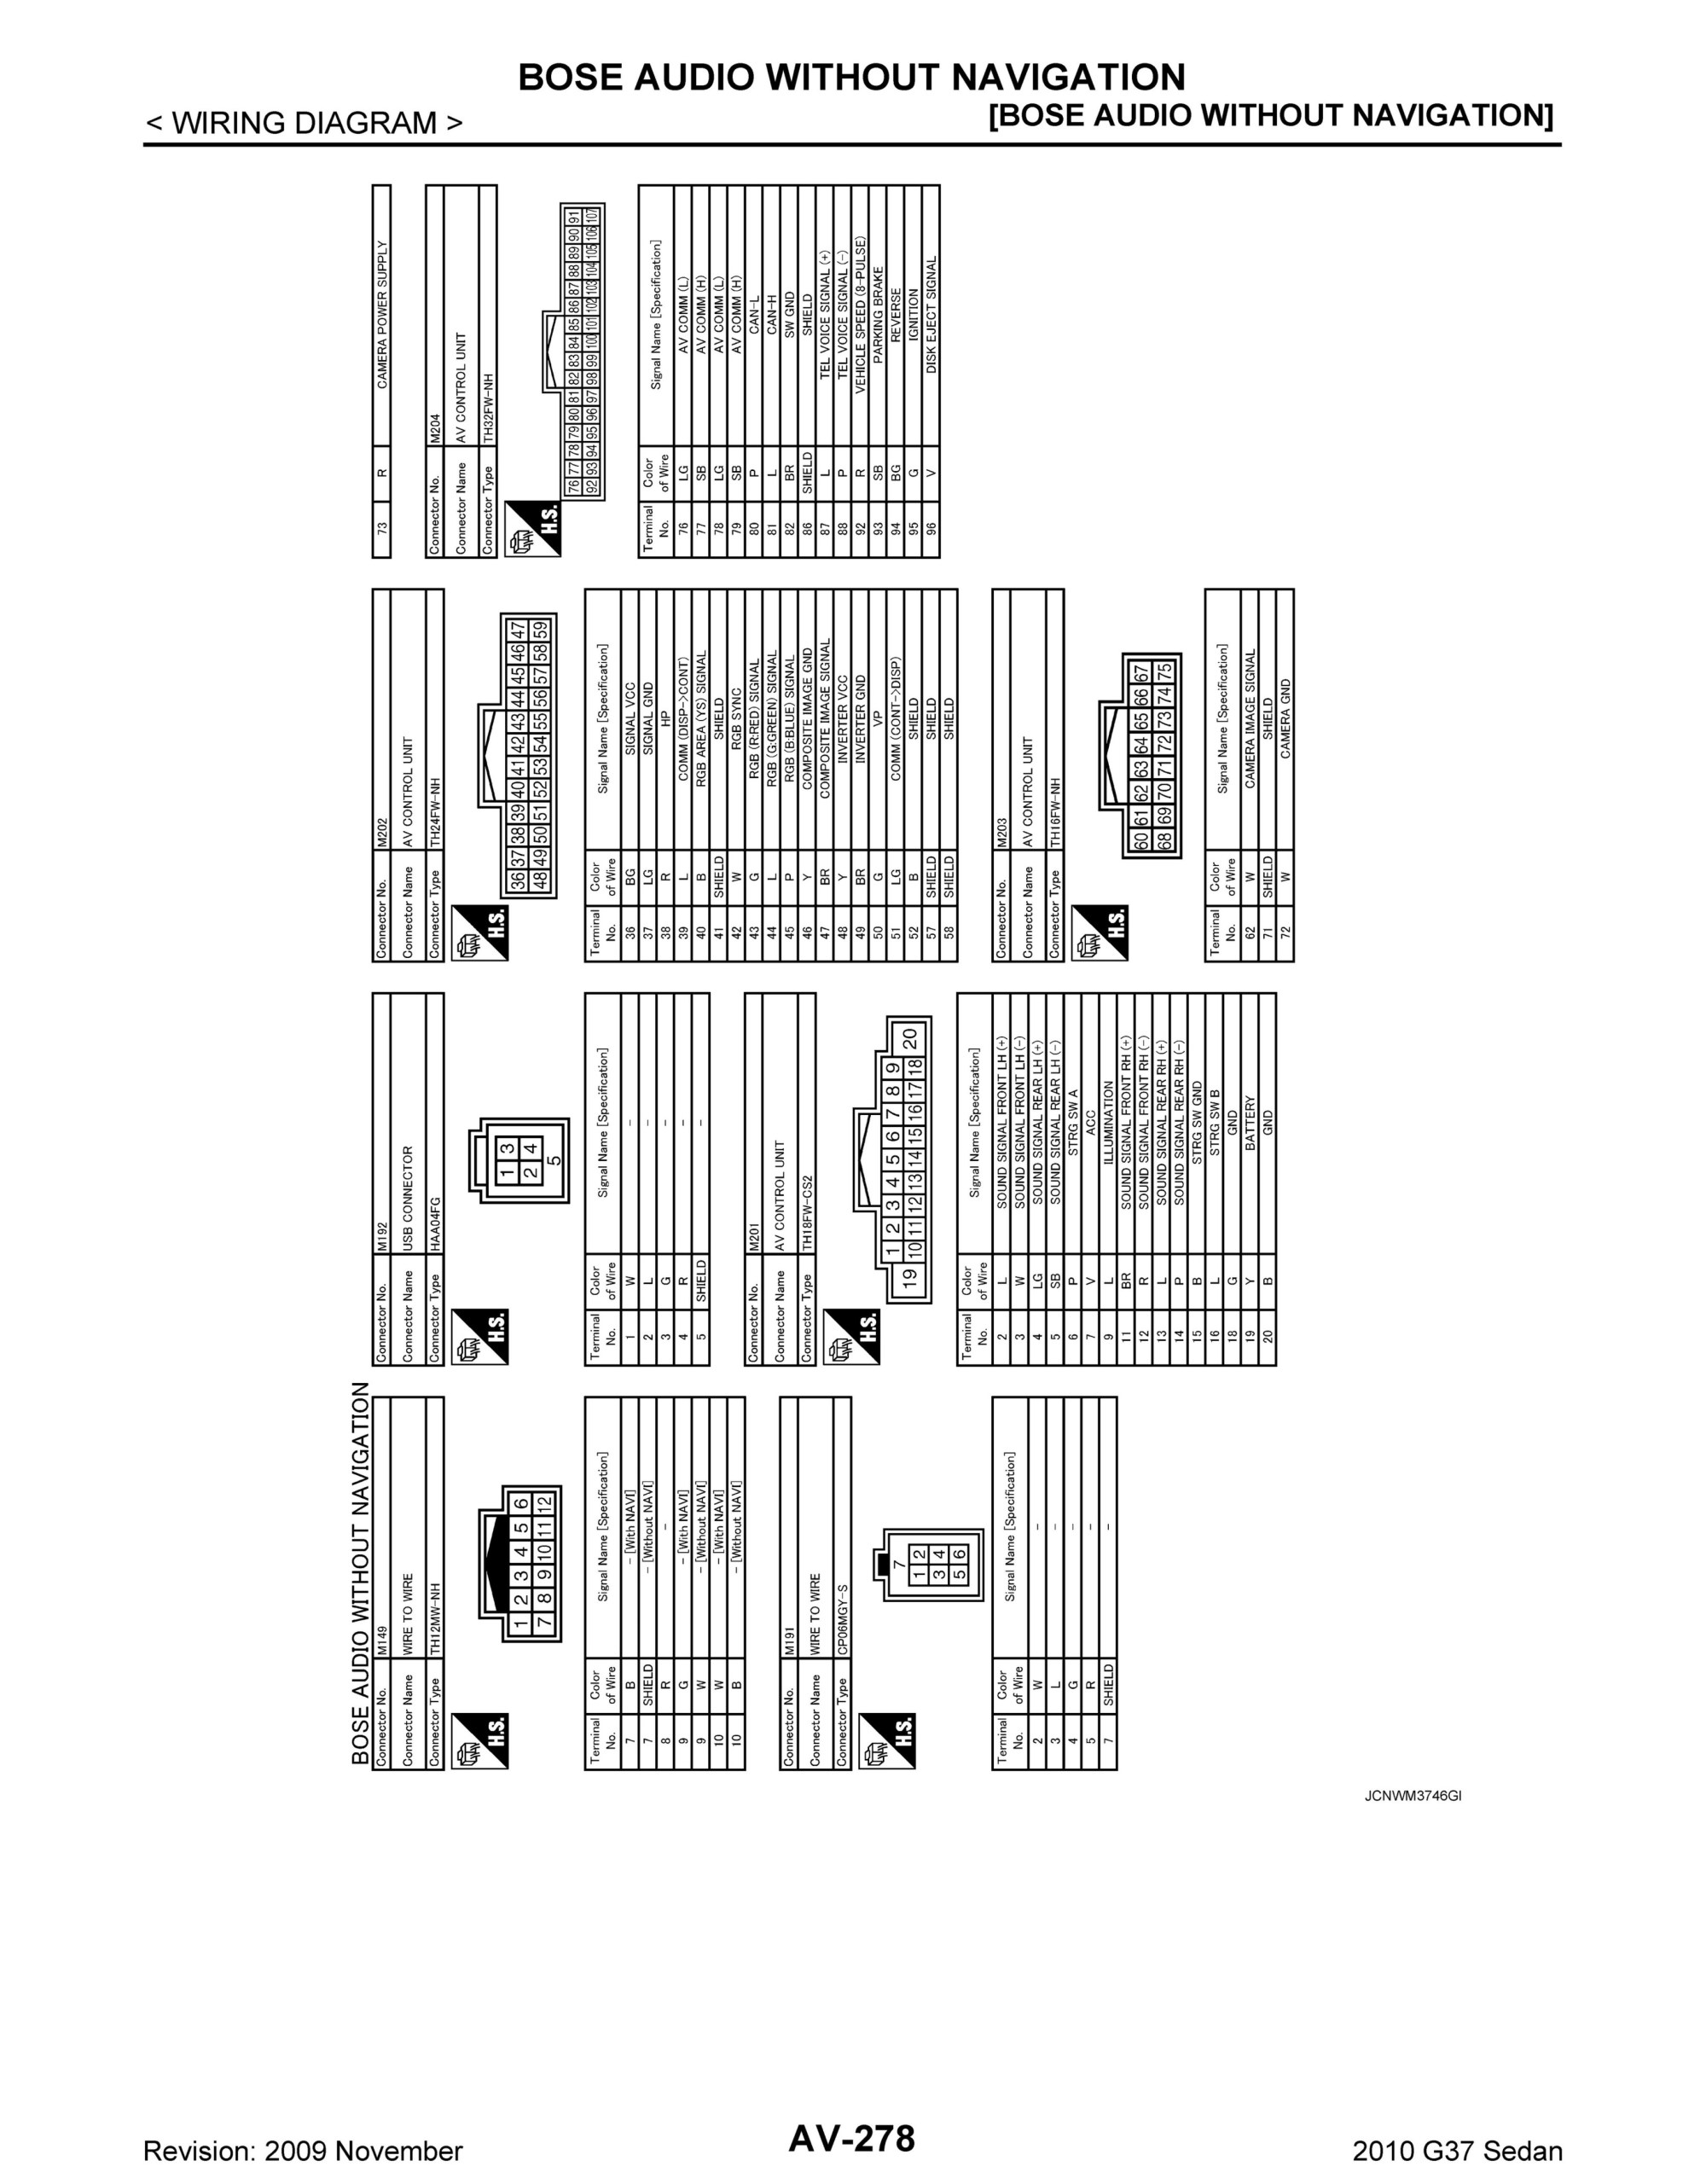 hight resolution of 2011 radio harness diagram s myg37name bosewithoutnav jpg views 820 size 952 5 kb